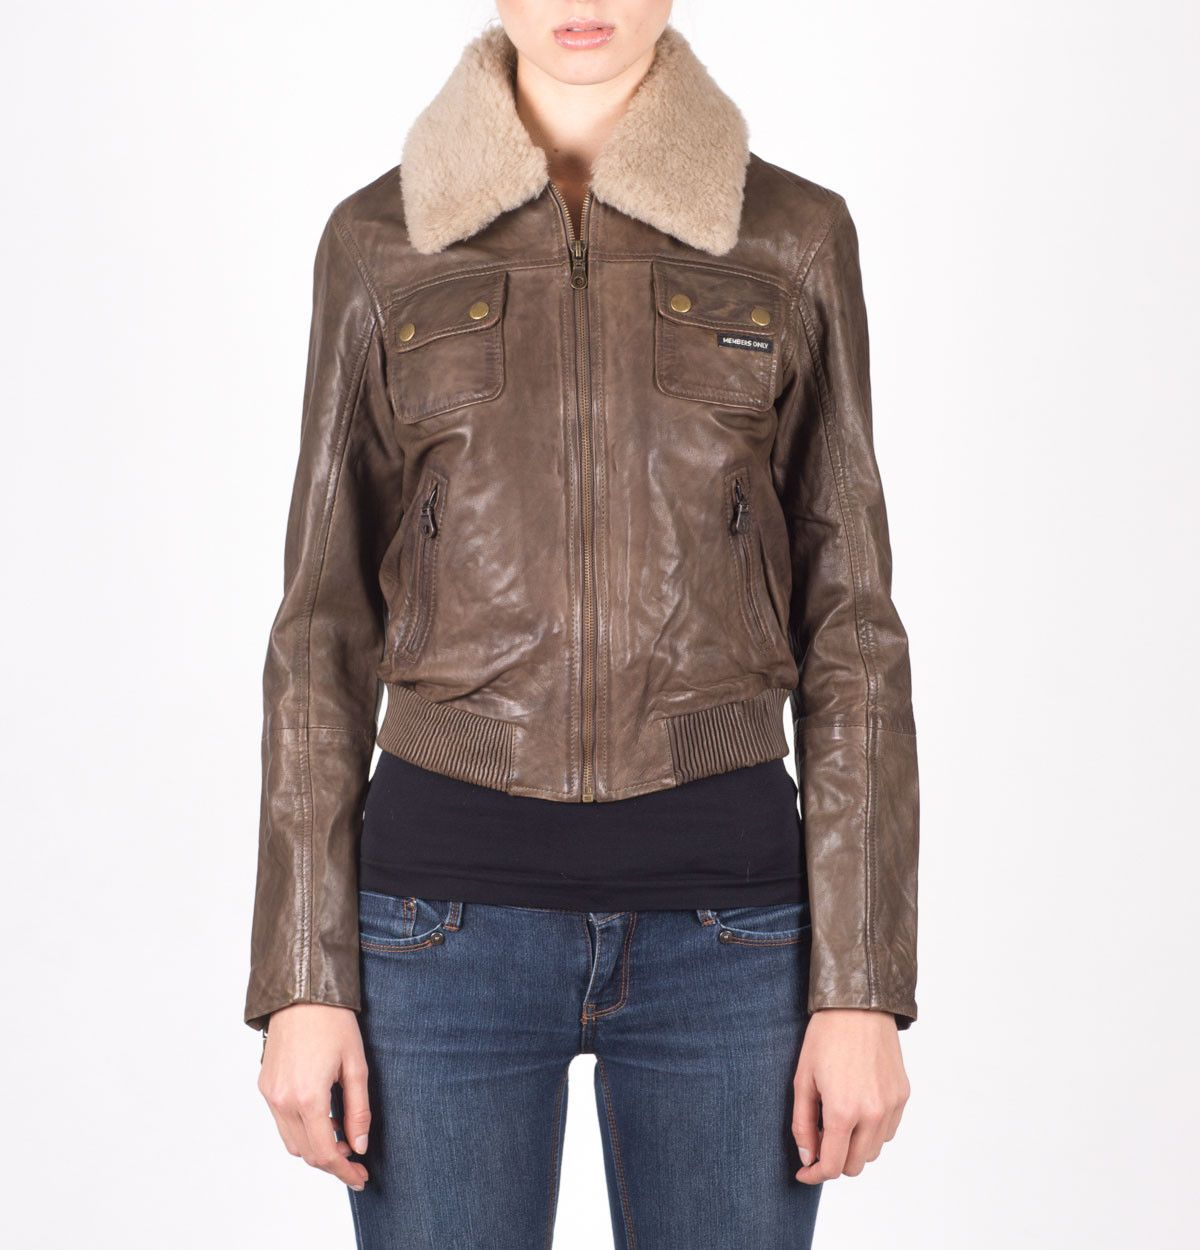 women's brown leather aviator jacket Aviator leather